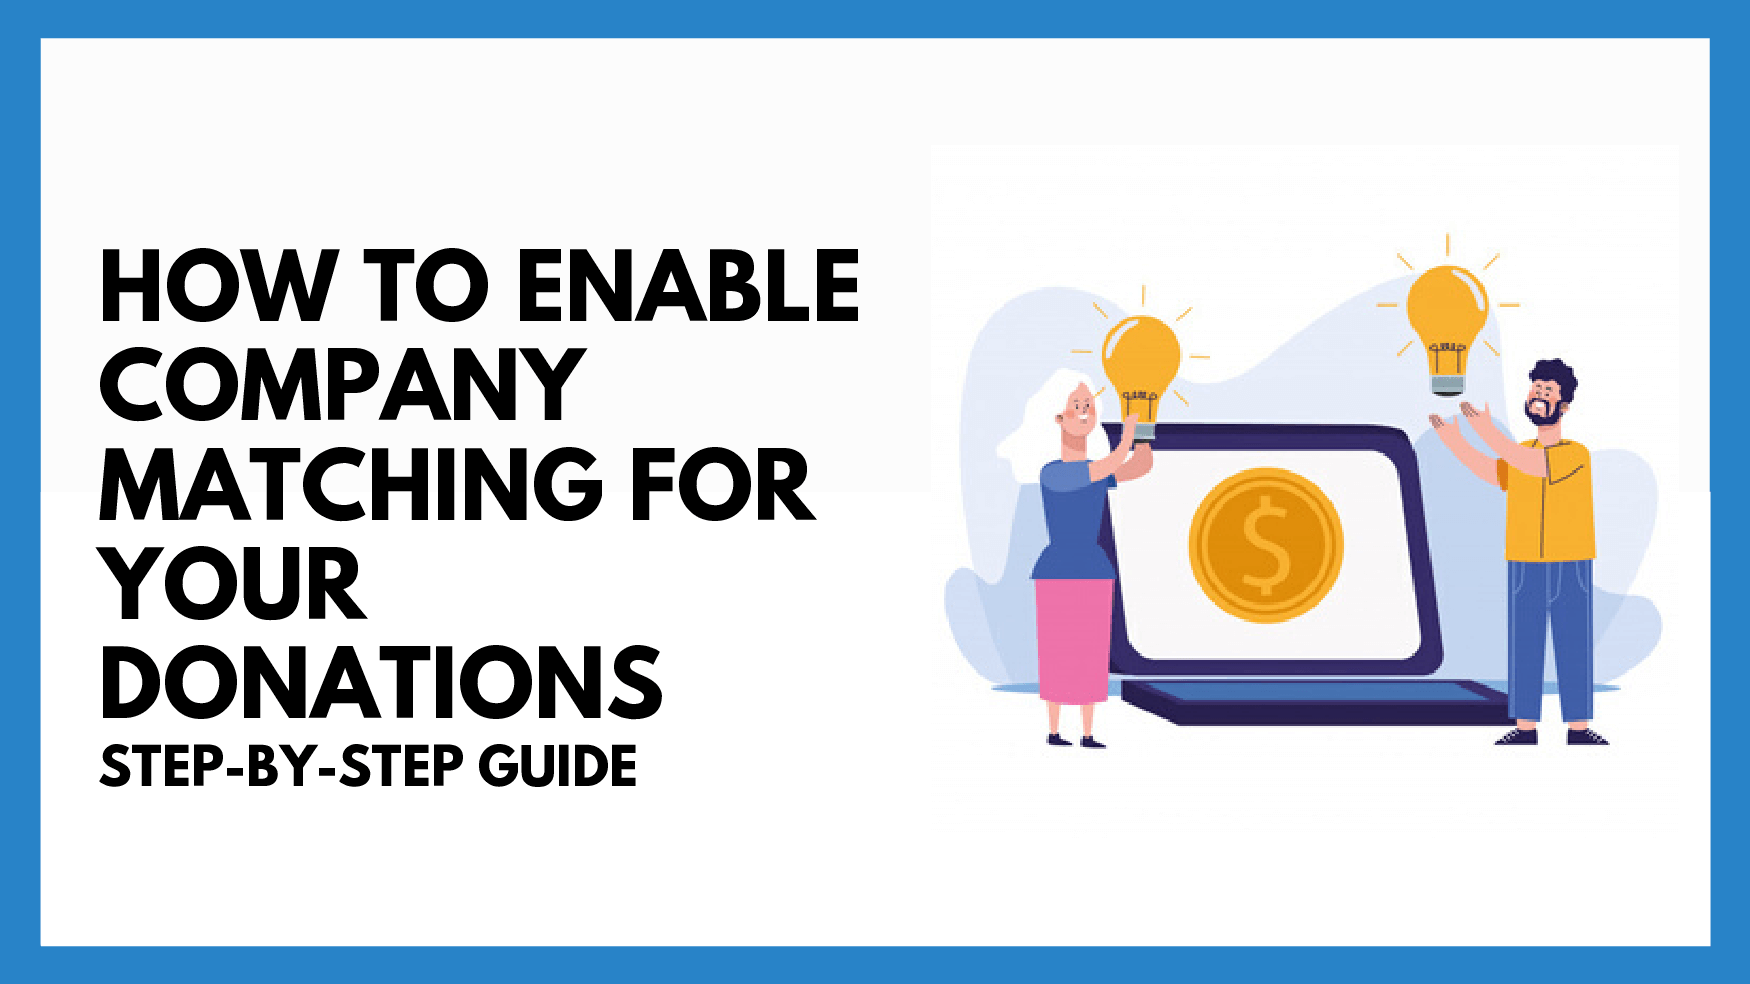 How to Enable Company Matching for Your Donations